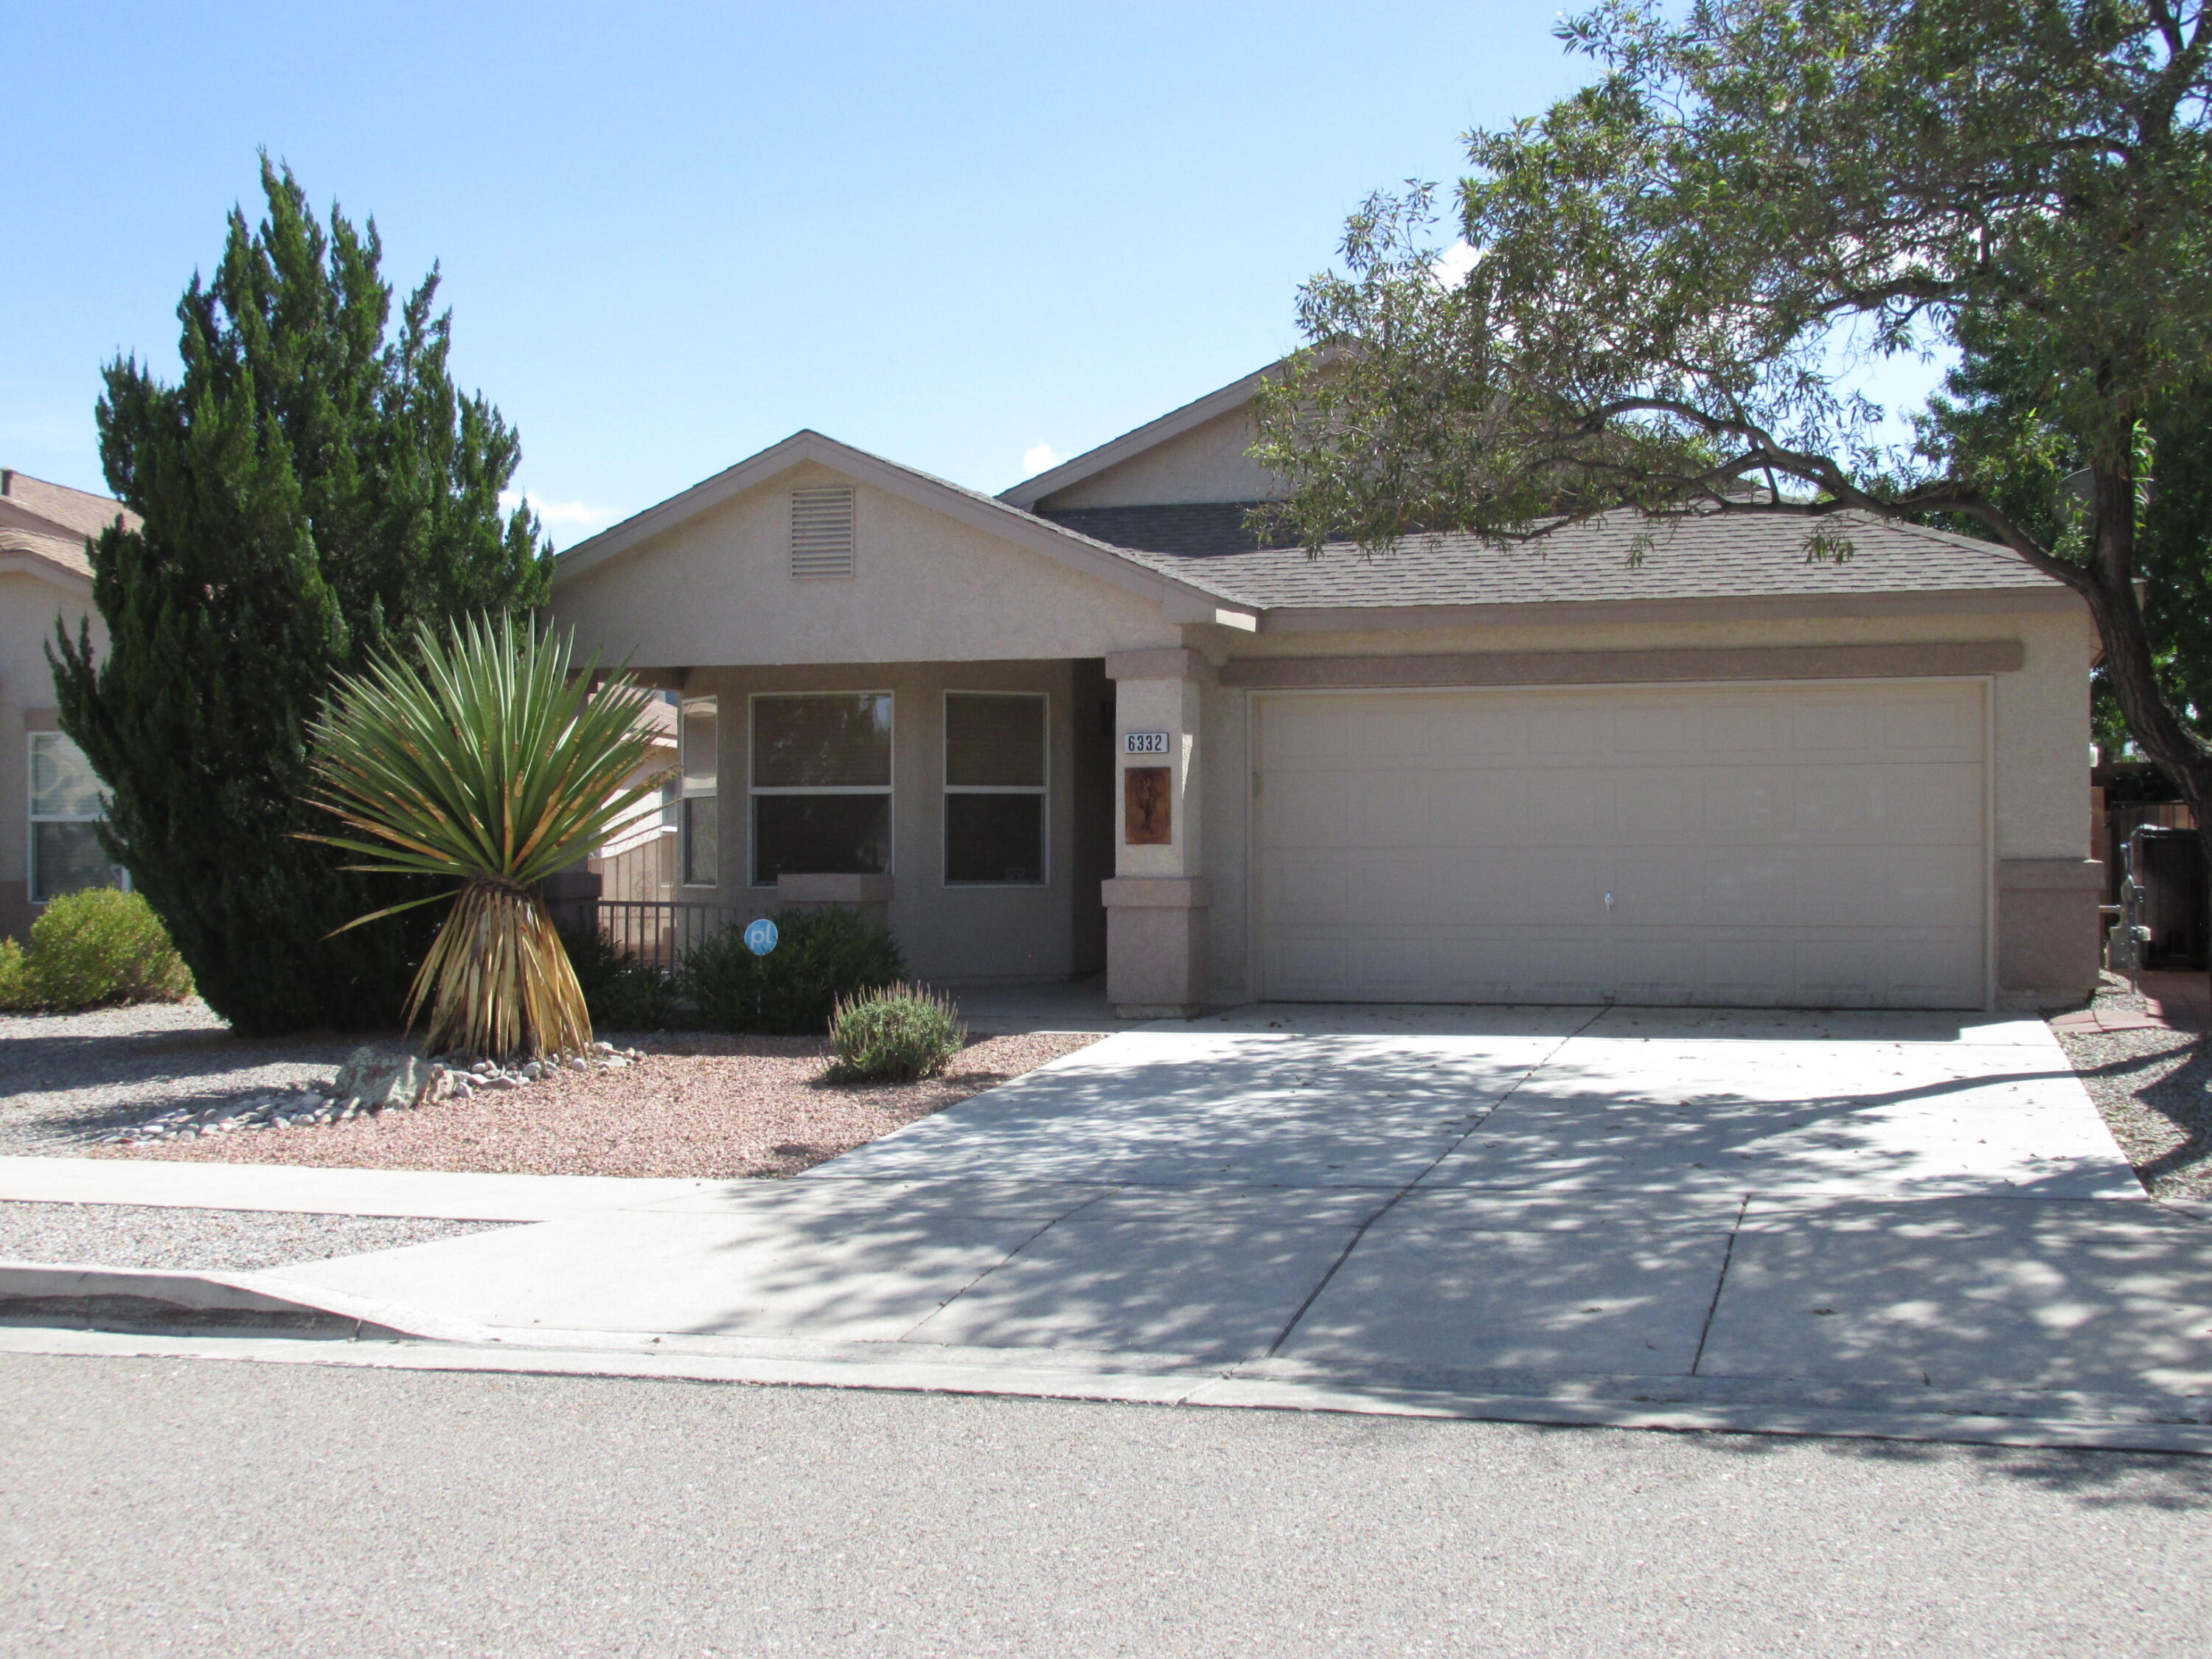 This is the house you will fall in love with! Clean and ready to move in, your future home has a green backyard with plenty of shade, grass, roses, covered patio, and inside there is only one level, two living areas, an alarm system, and the house smells great too!  Enjoy life in the backyard oasis with mature trees or relax inside in front of the fireplace!  So many features to appreciate in this DR Horton home such as accent paint, cultured marble tub surrounds, paneled doors, open kitchen floorplan, separate garden tub and shower, glass block, double sinks, a kitchen island, pantry, and cathedral ceilings!  Does this sound exciting?  You will be when you see this home in person.  Do it now, this will not last.